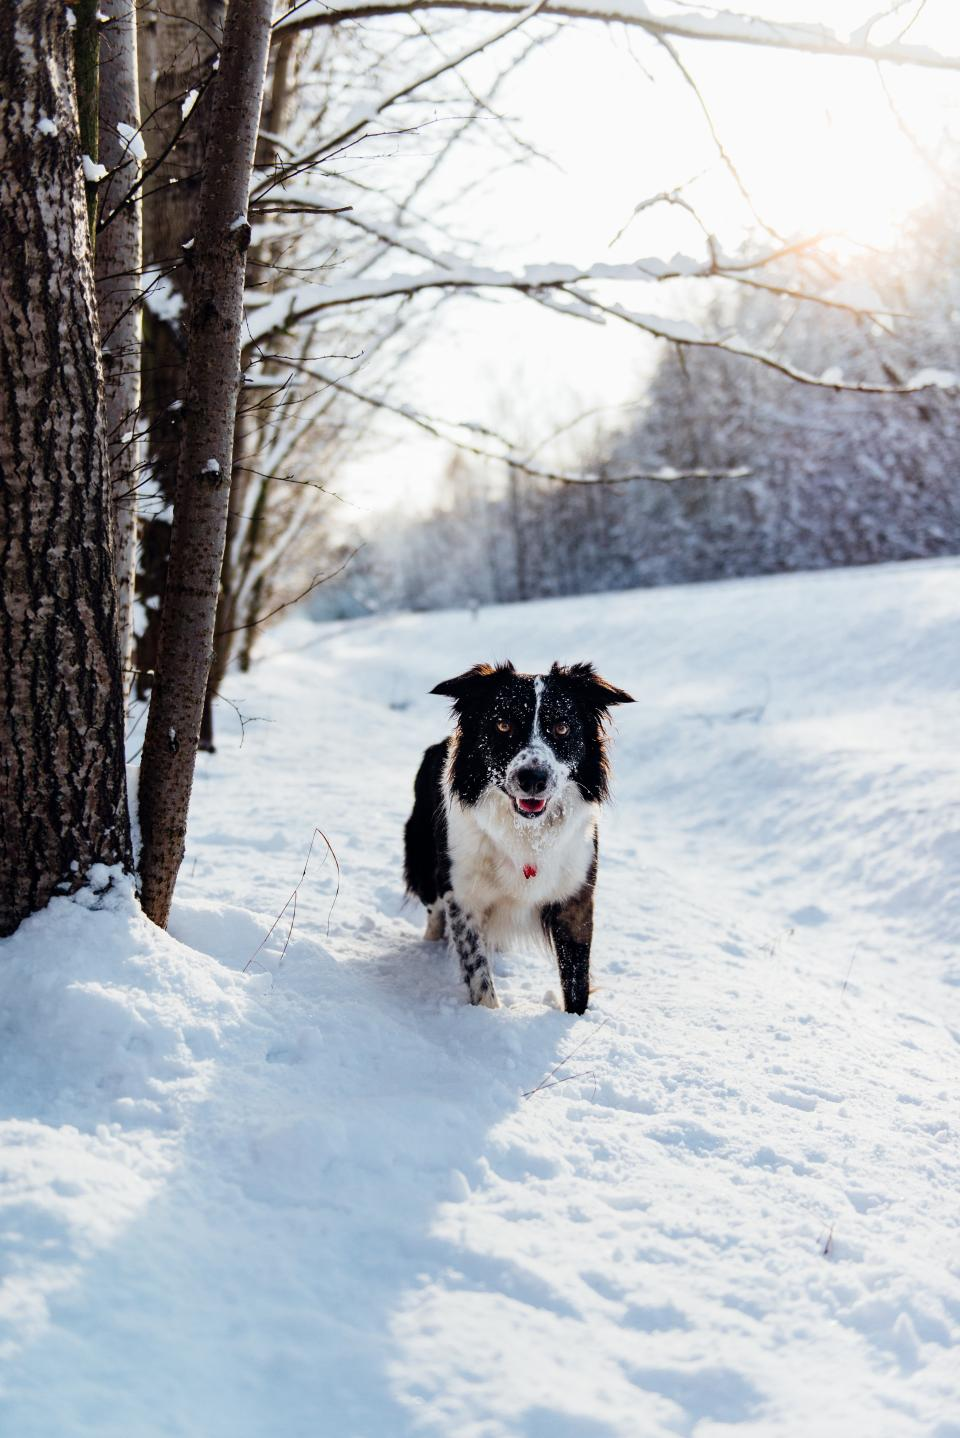 dog, animal, pet, puppy, snow, winter, trees, plants, nature, outdoor, sunny, day